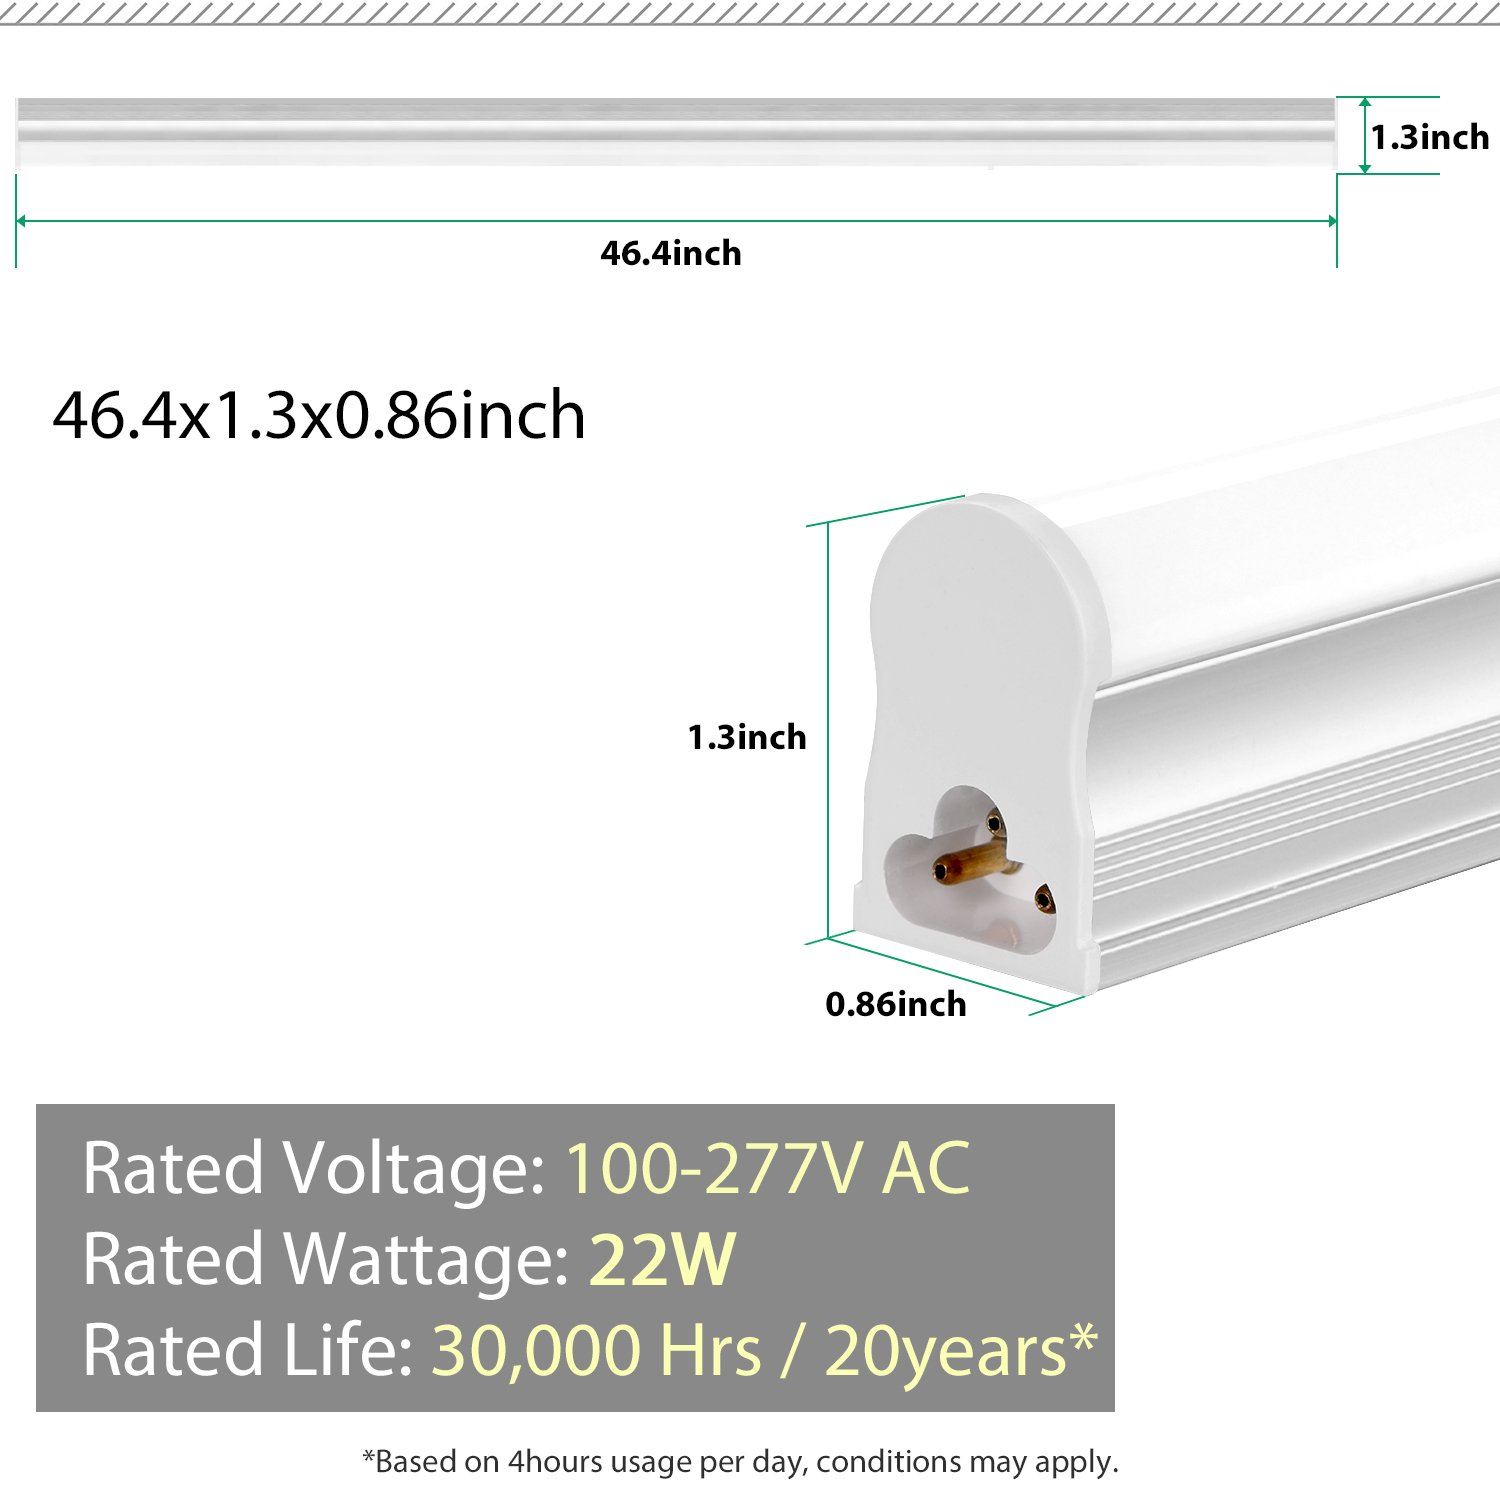 FrenchMay LED T5 mini utility linkable shop light 4ft, 22W, 85CRI, 2200Lumens, 5000K, 32w Fluorescent Equivalent, integrated ceiling light & under Cabinet shop light for garage, workshop, basement by FrenchMay (Image #6)